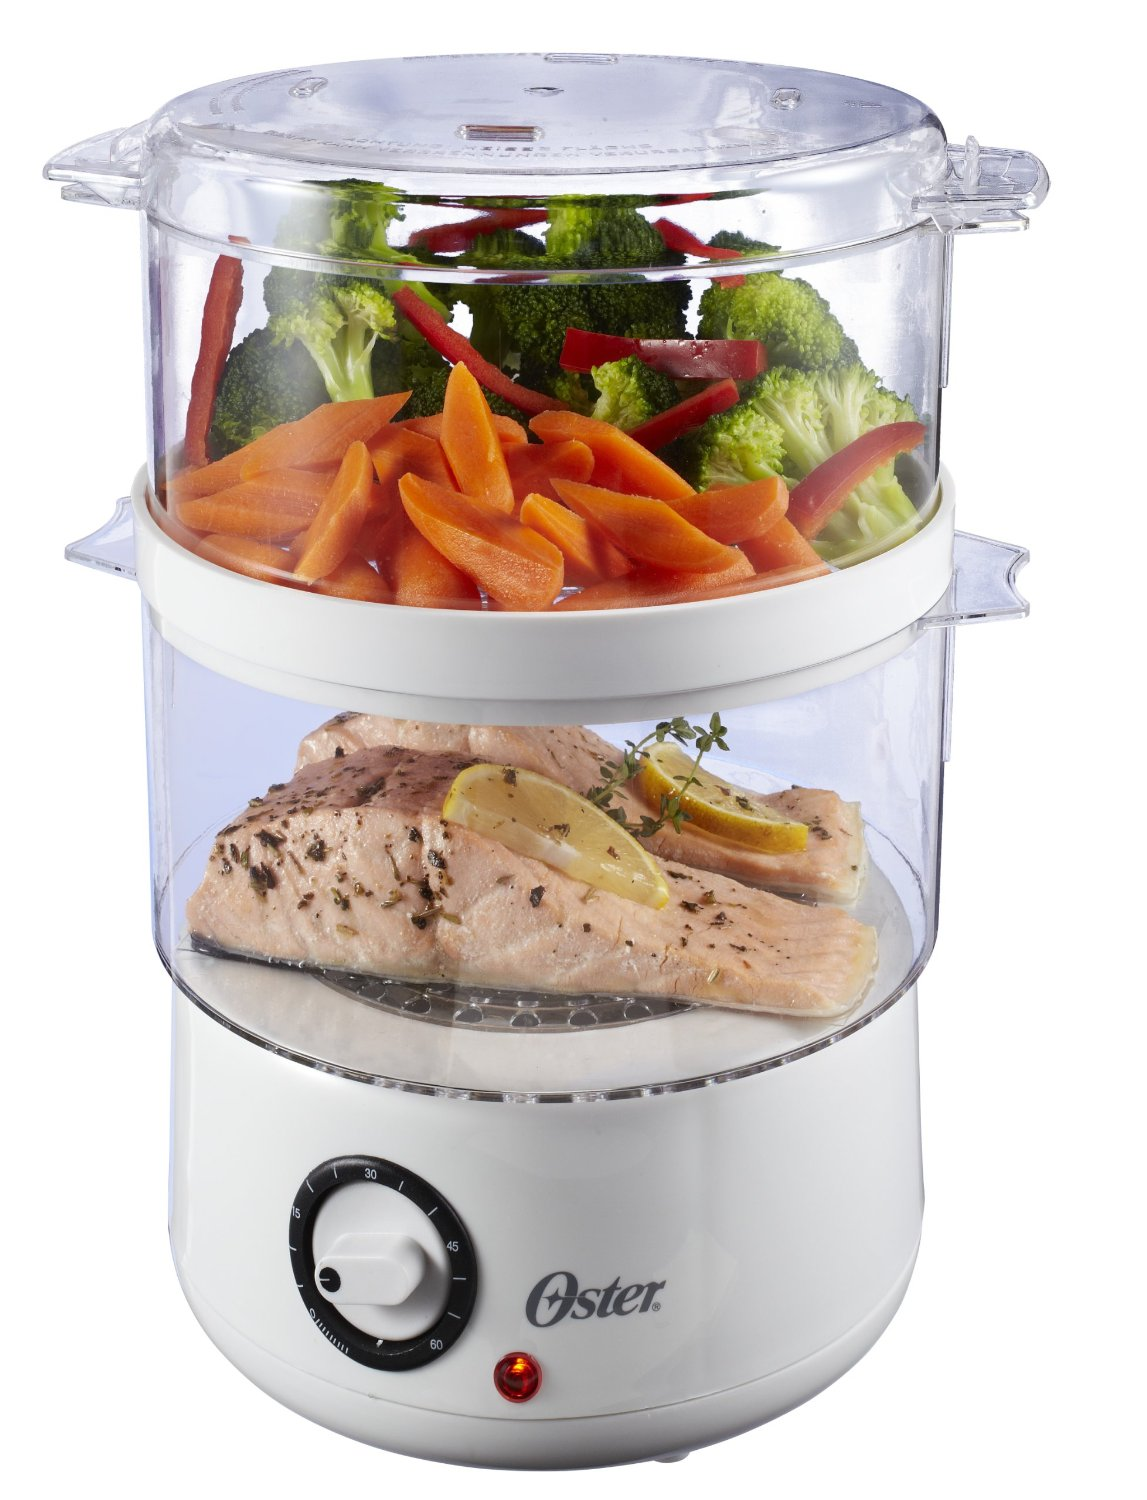 Oster CKSTSTMD5-W 5-Quart Food Steamer, White